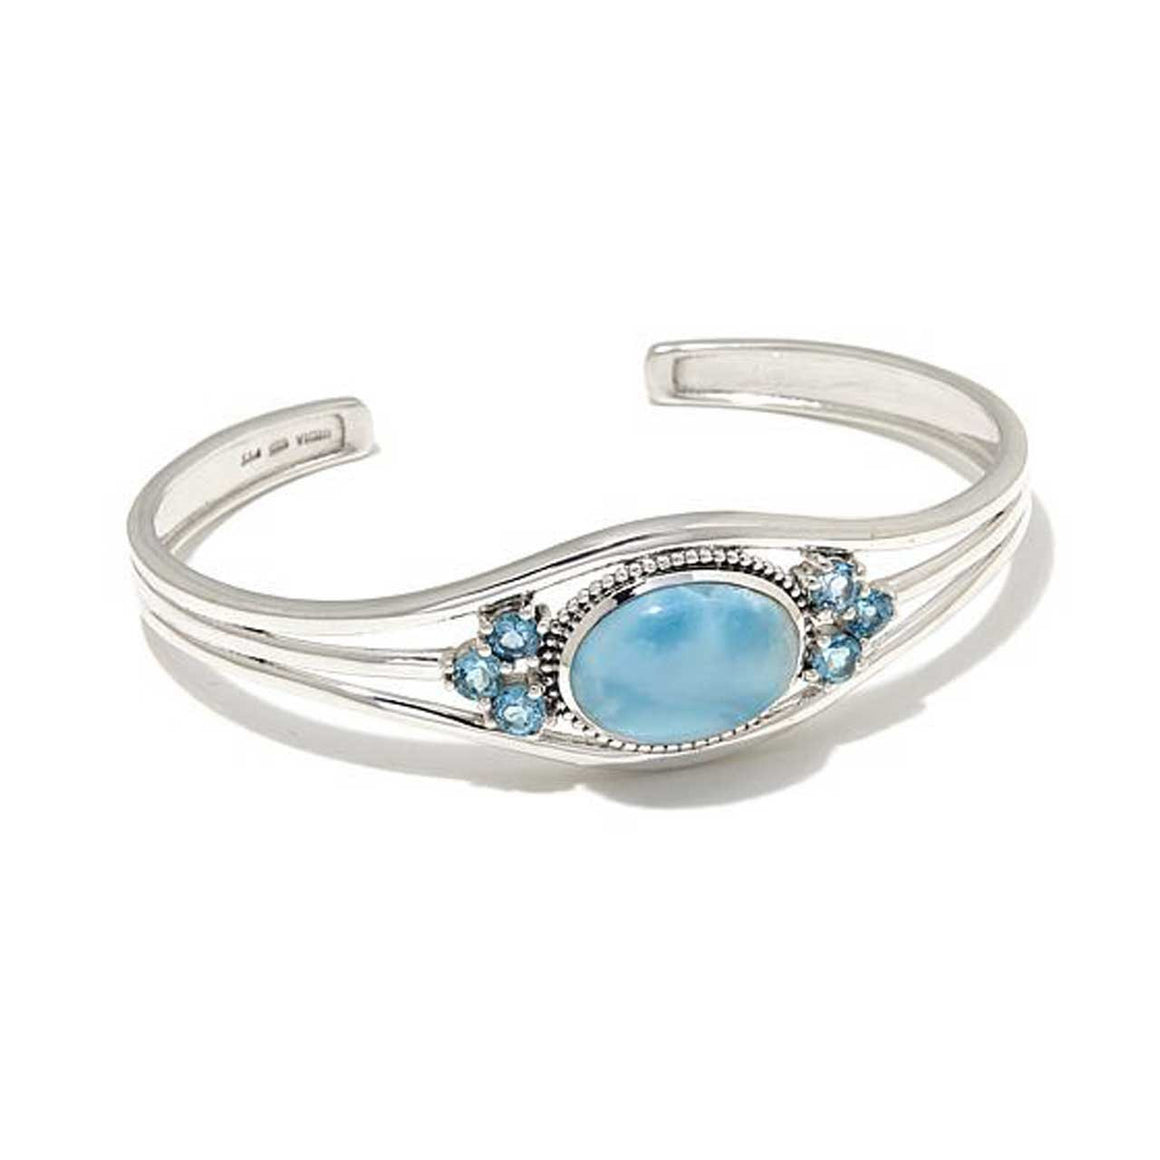 Larimar and Blue Topaz Cuff Bracelet - Last Chance